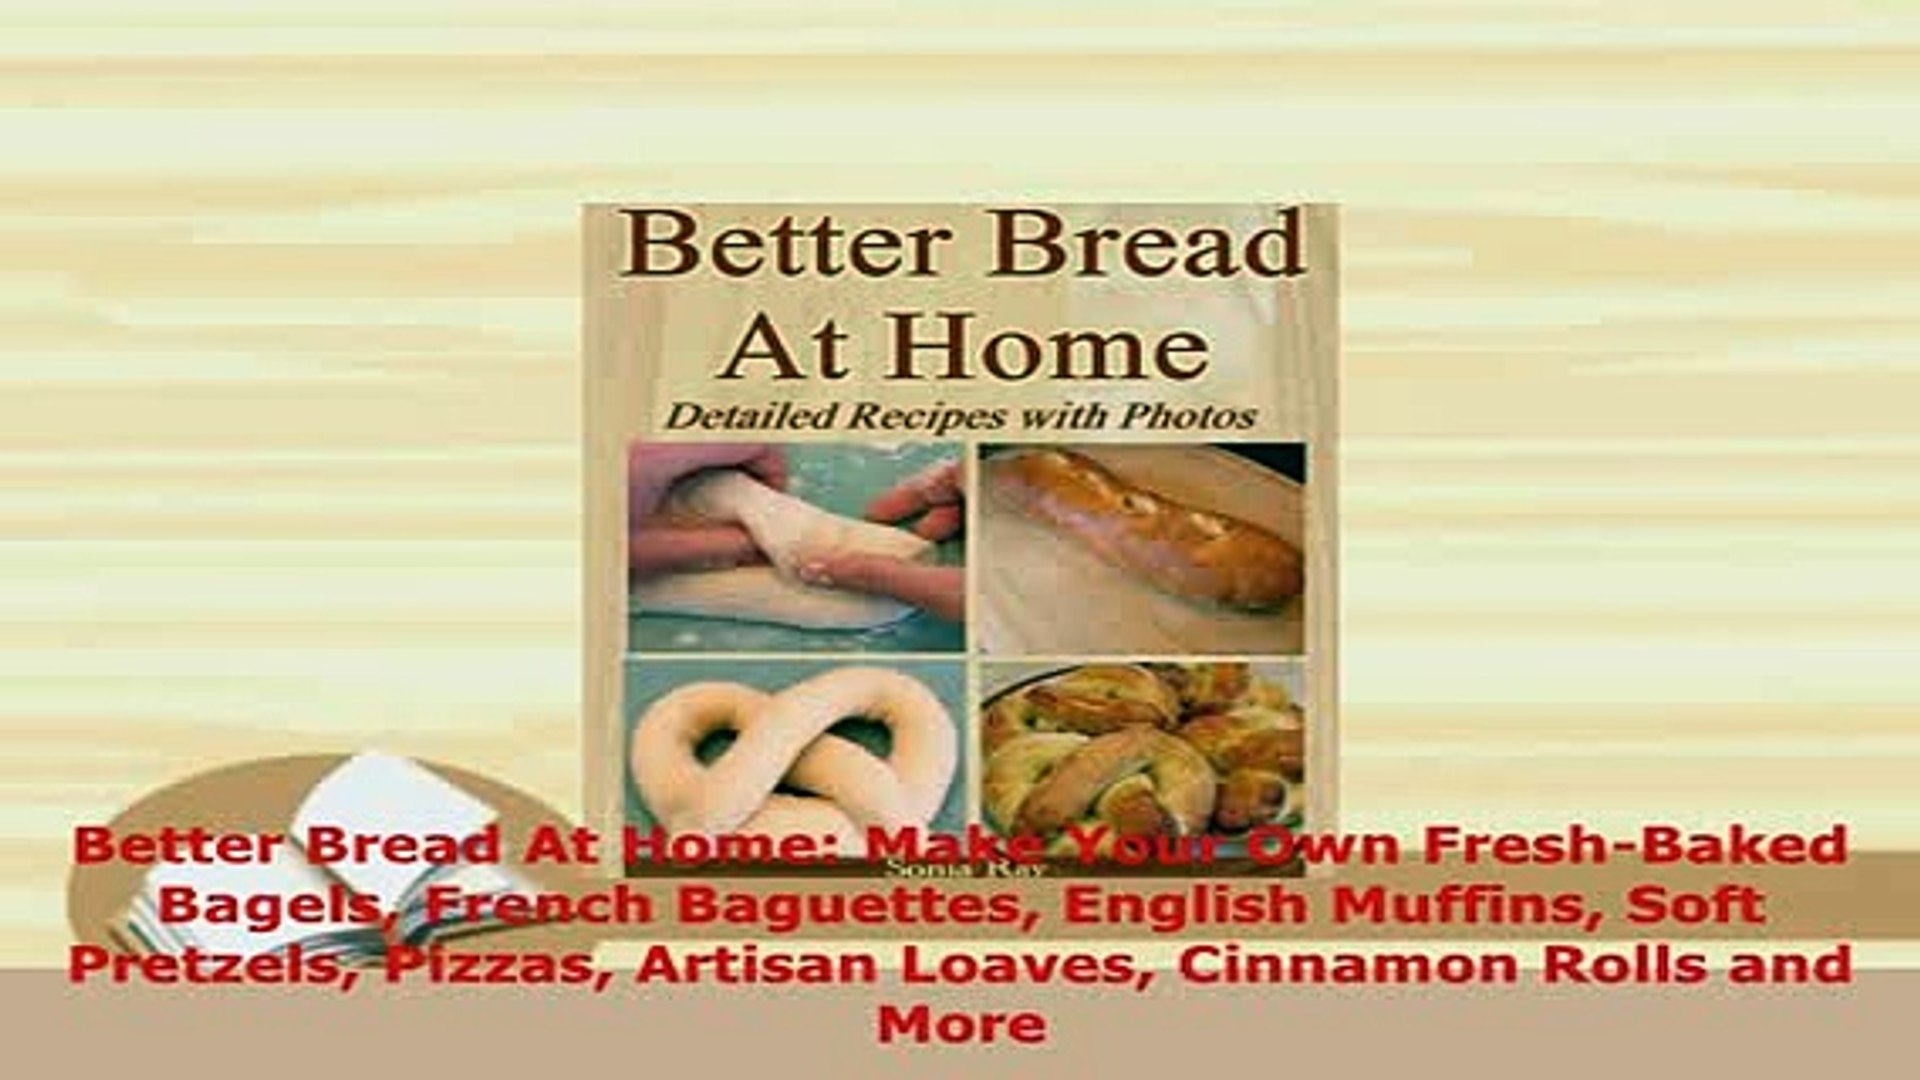 Download Better Bread At Home Make Your Own Freshbaked Bagels French Baguettes English Muffins Download Online